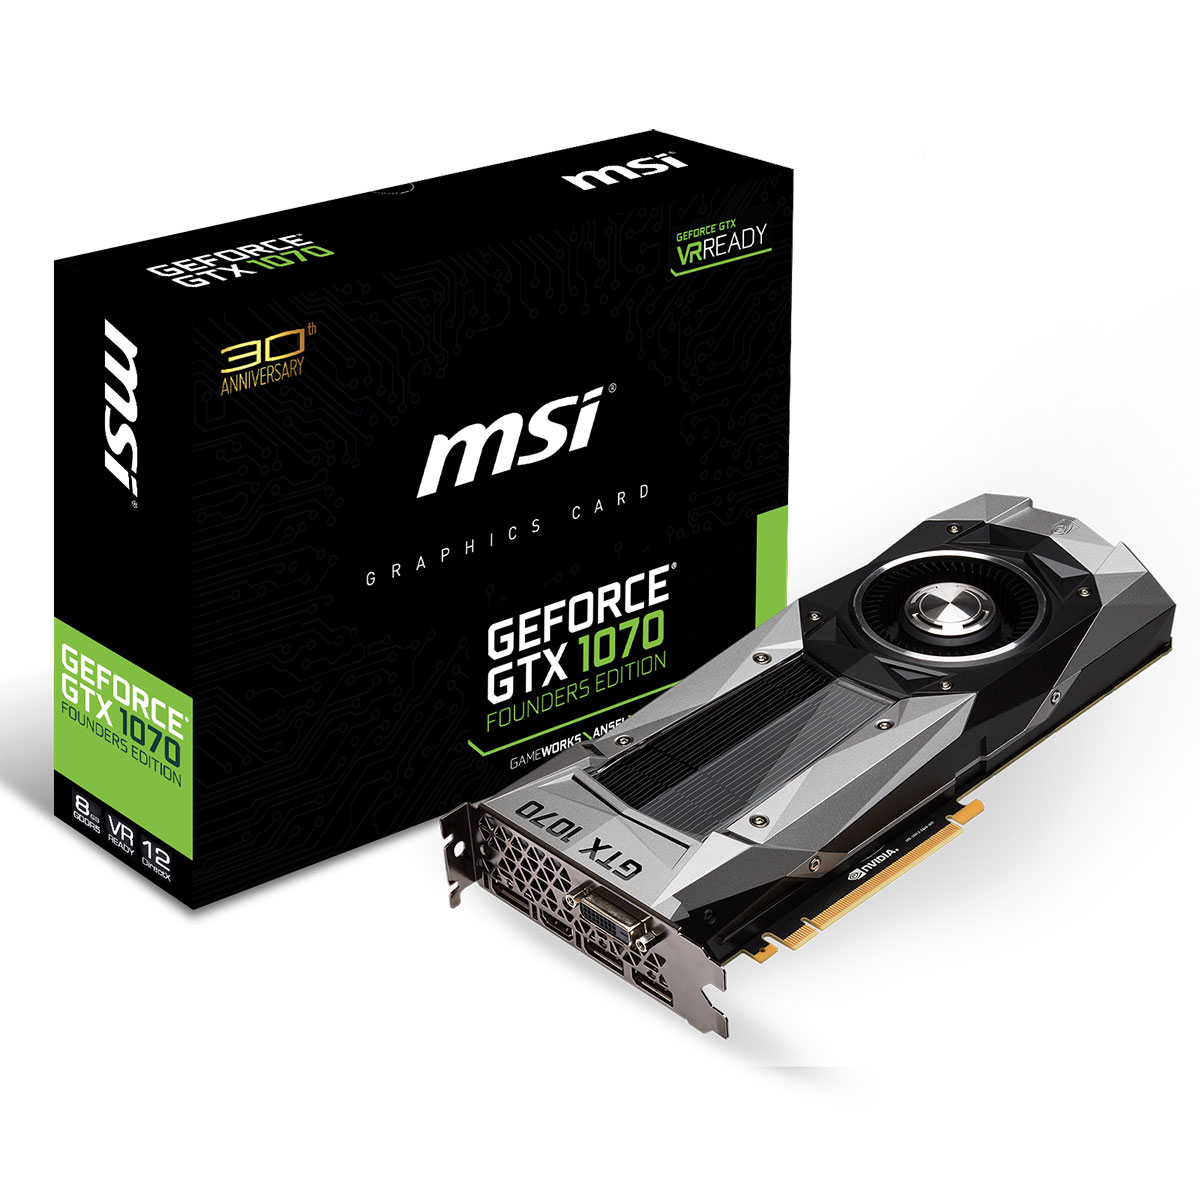 msi geforce gtx 1070 founders edition carte graphique msi sur ldlc. Black Bedroom Furniture Sets. Home Design Ideas